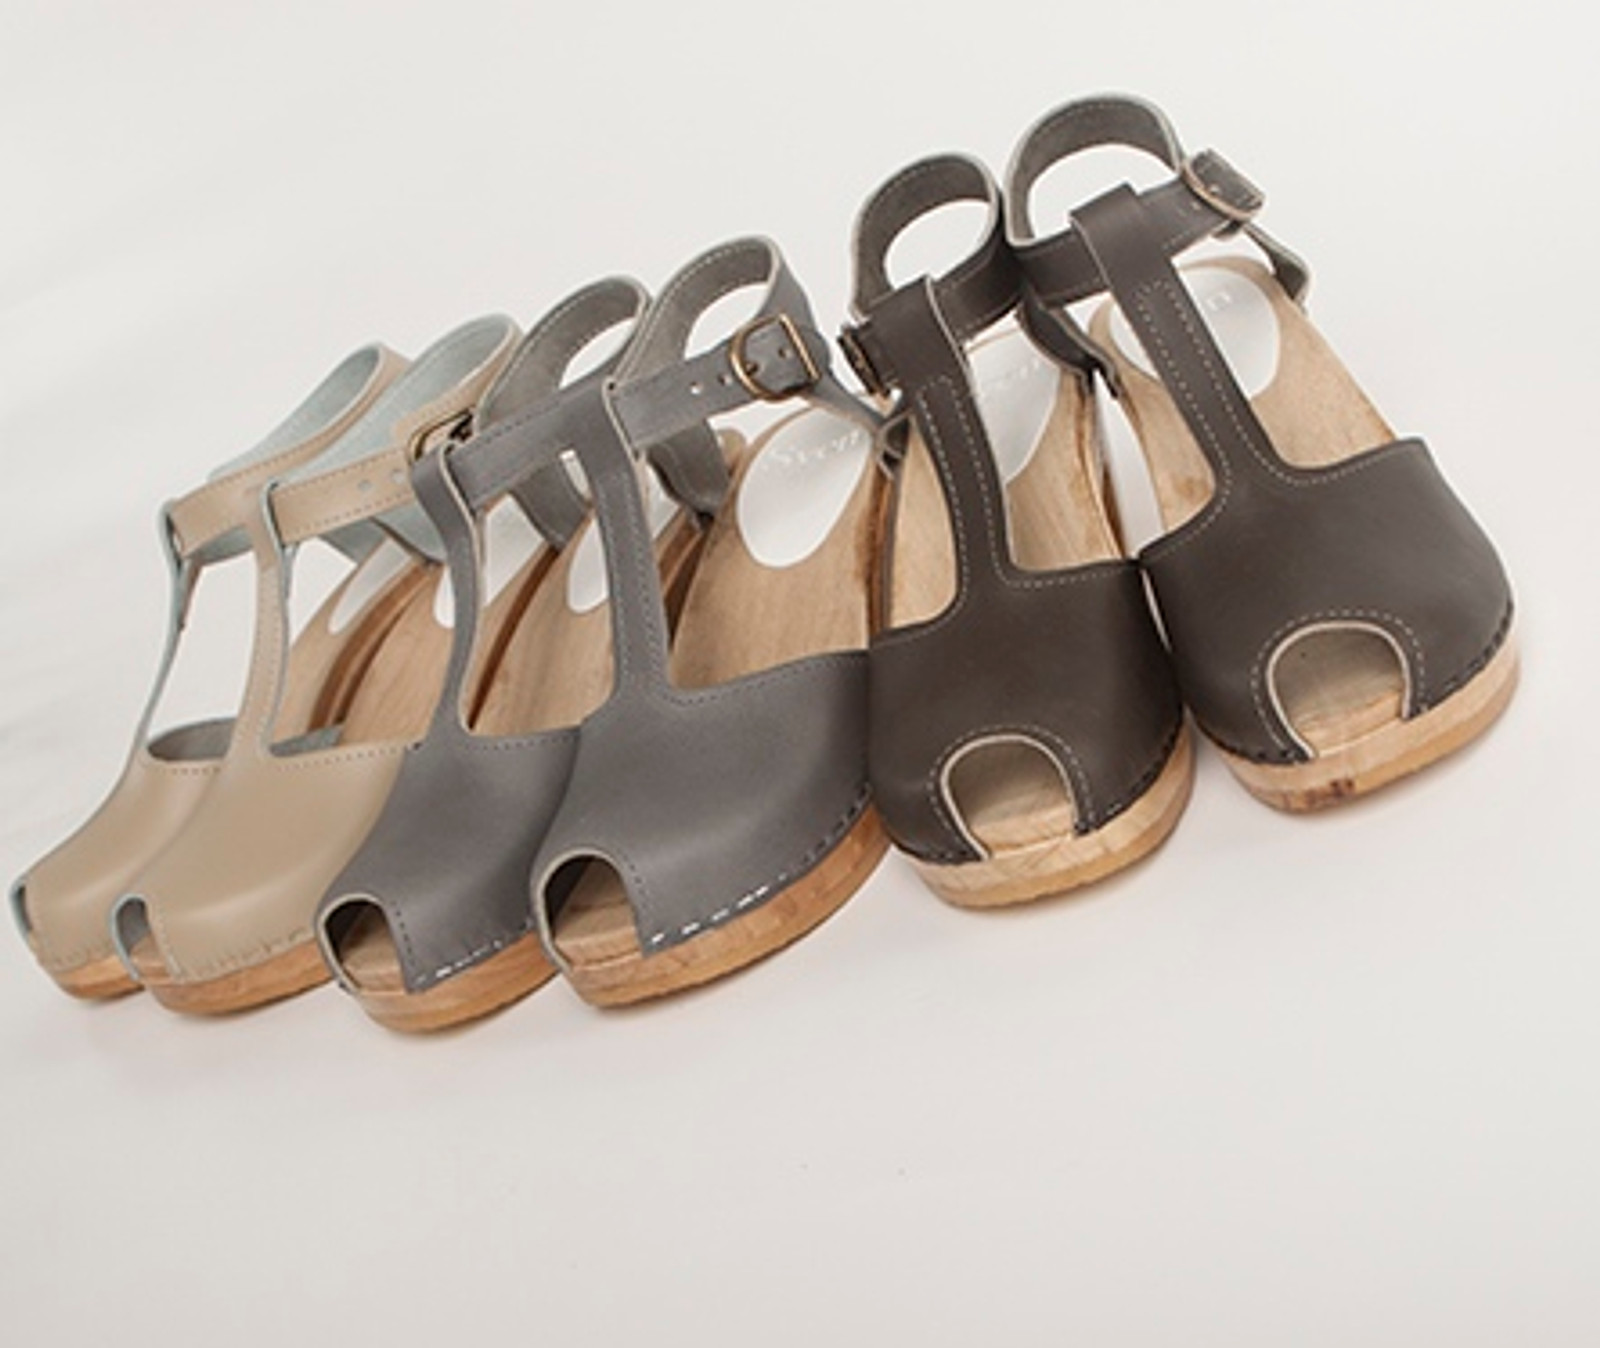 T-Strap Clogs with Peep Toes